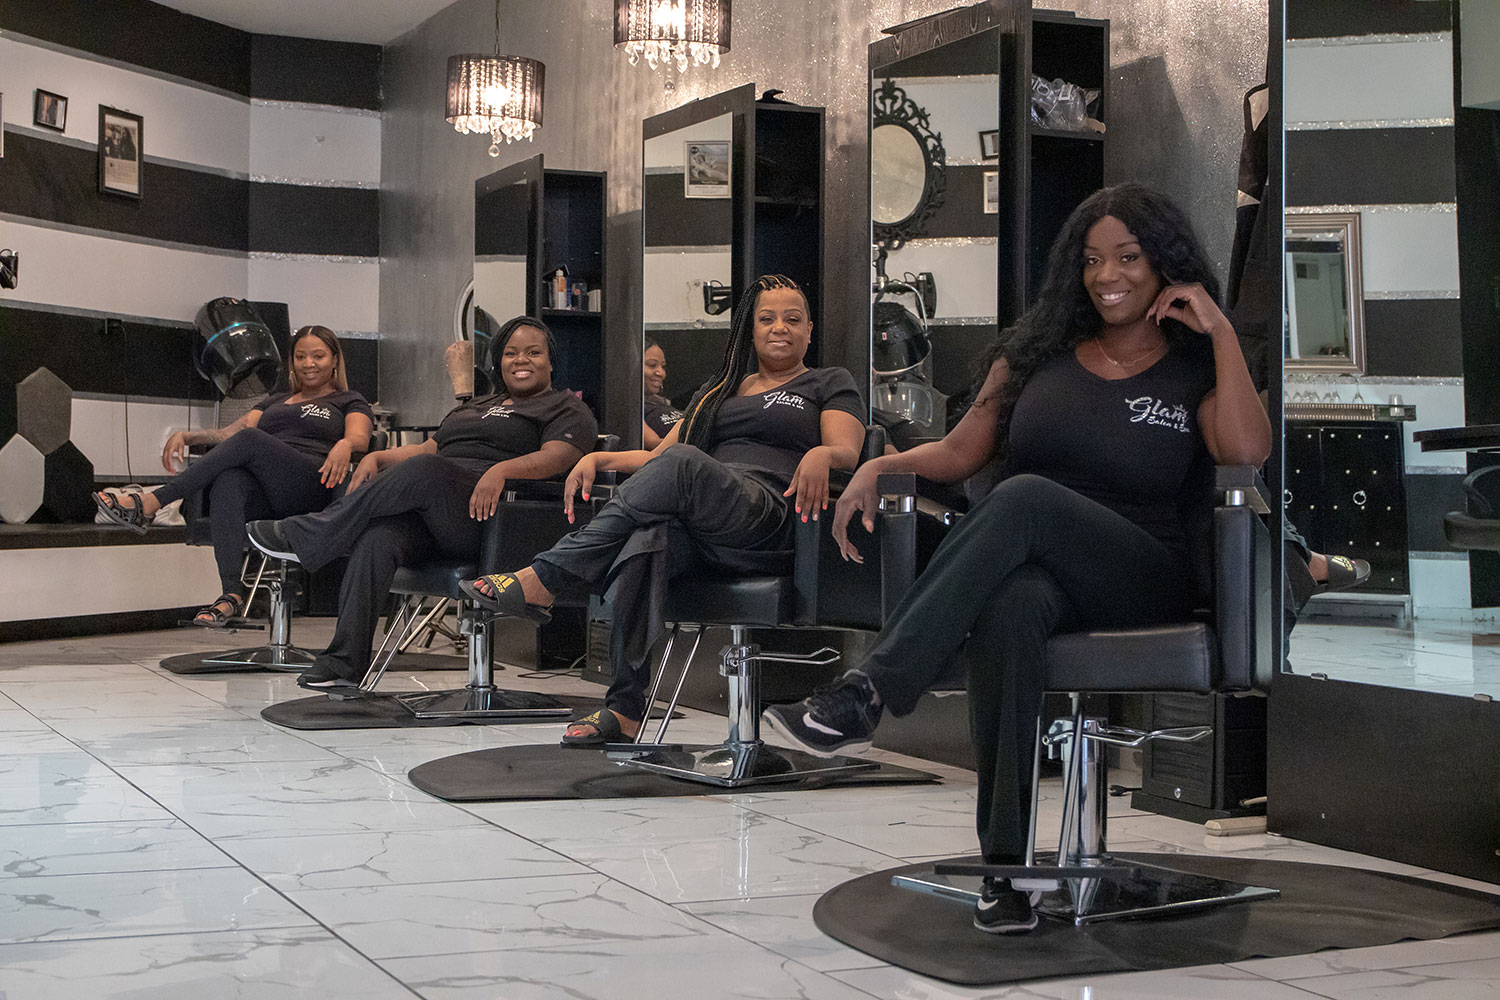 The Glam Salon and Spa, Offers All You'll Ever Need